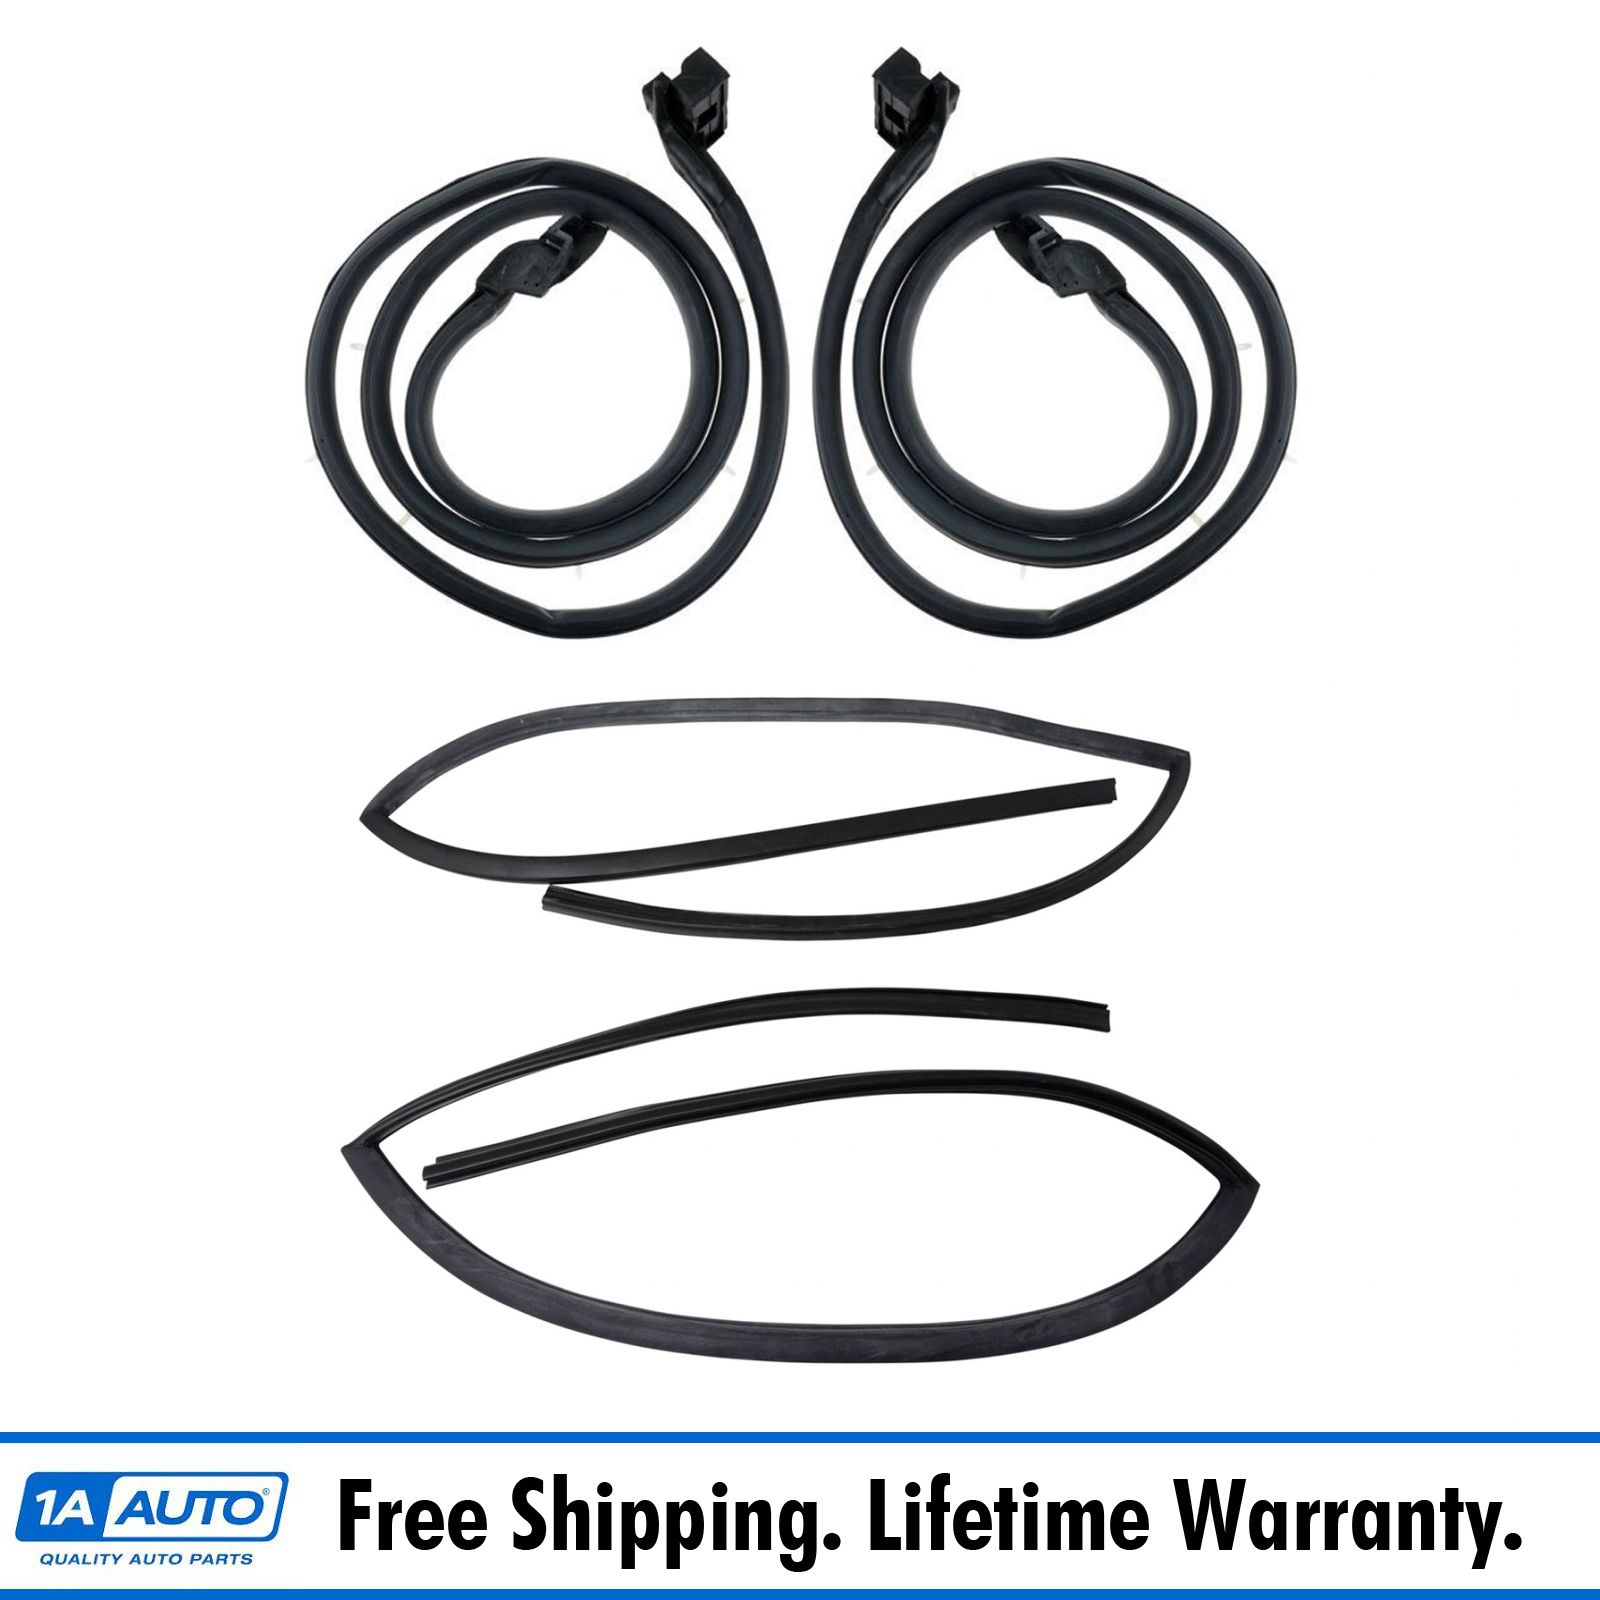 Molded Door Seal Rubber Weatherstrip Pair Set of 2 for 66-77 Ford Bronco